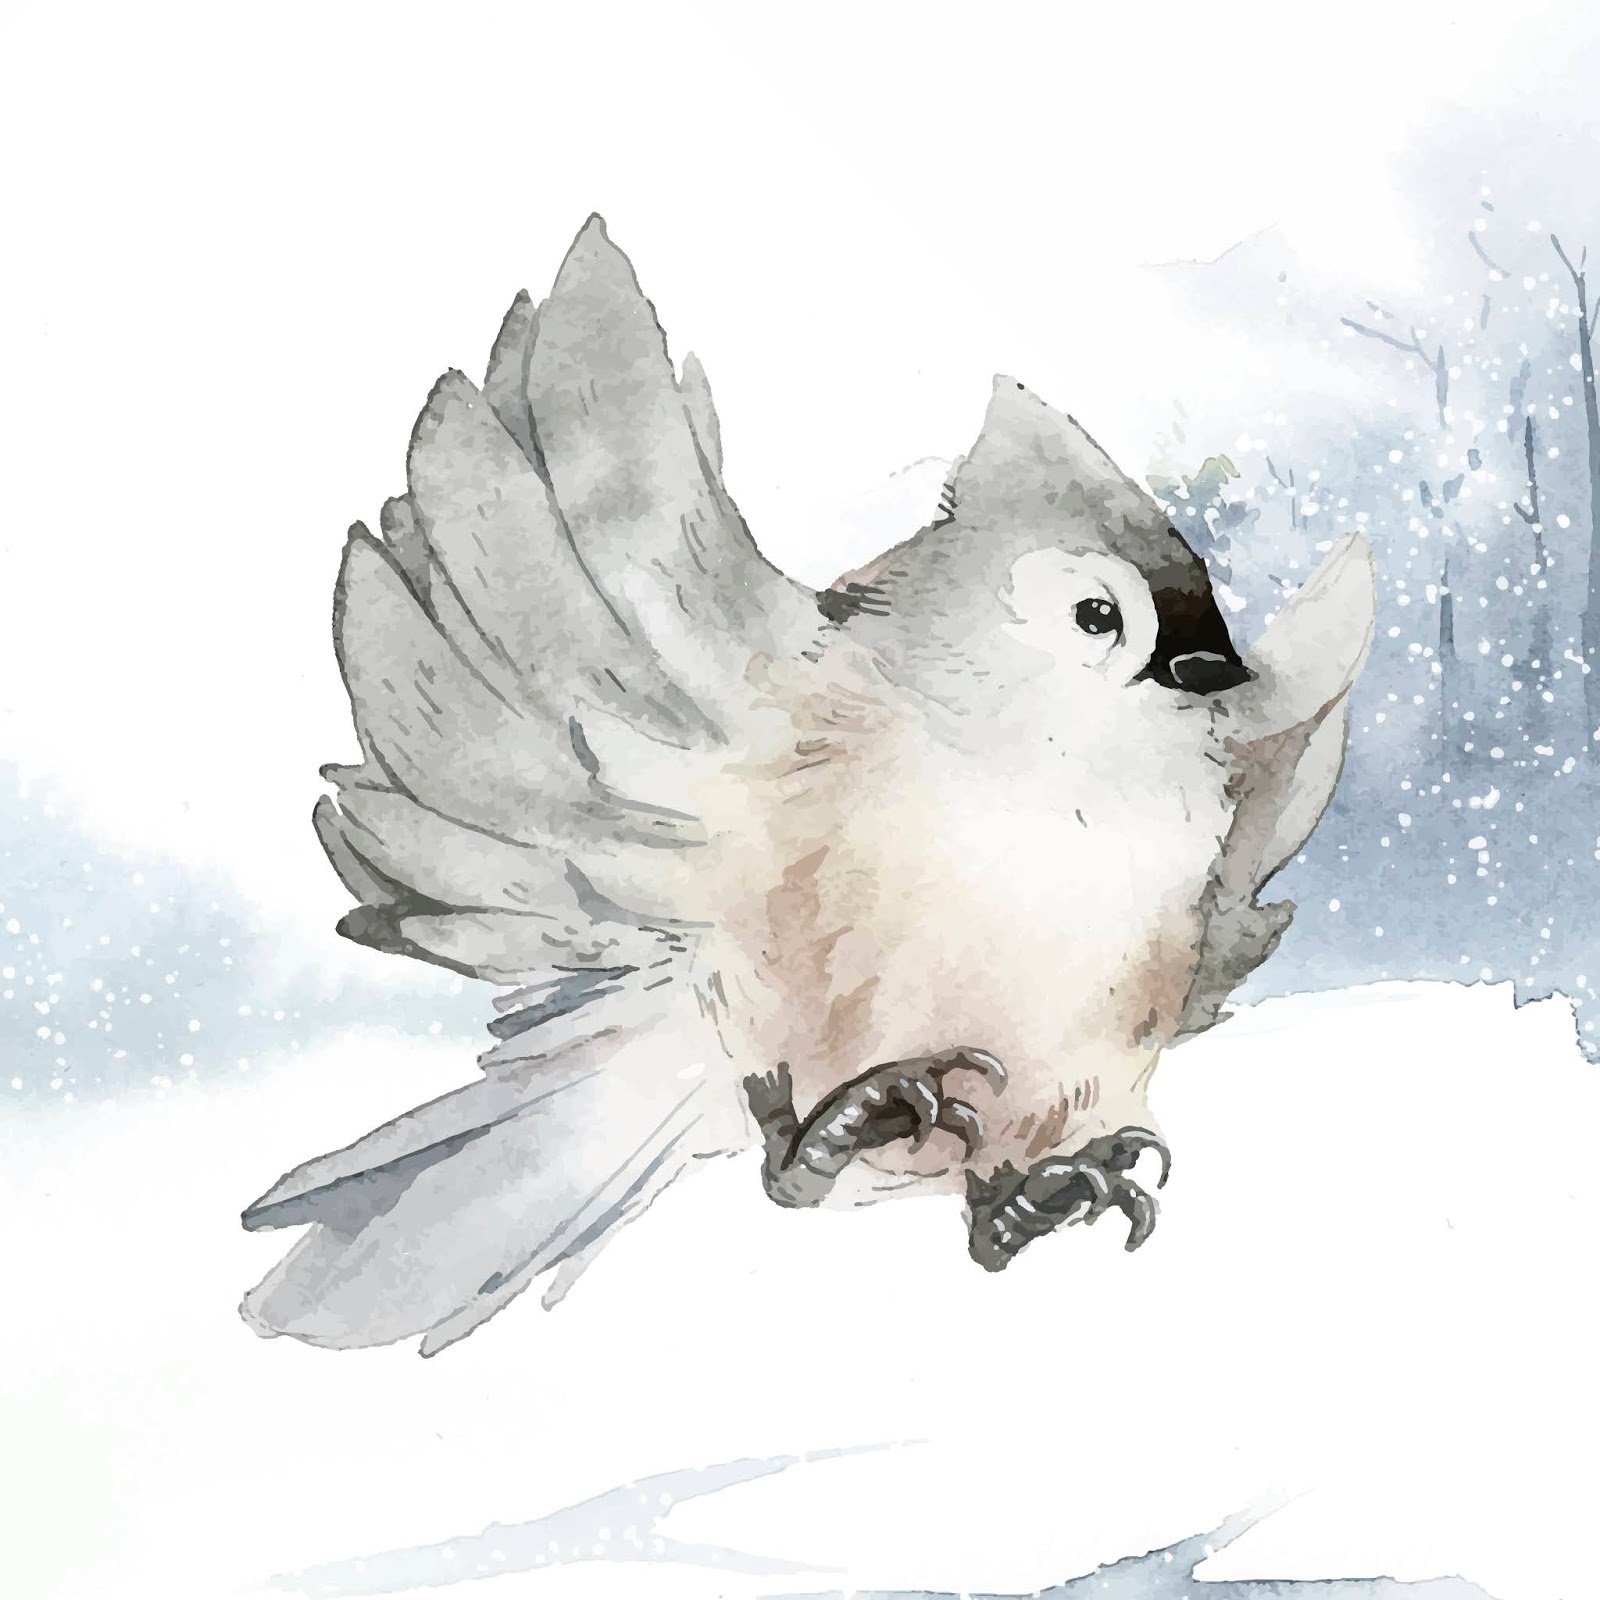 Tufted Titmouse Bird Wintertime Watercolor Vector Free Download Vector CDR, AI, EPS and PNG Formats